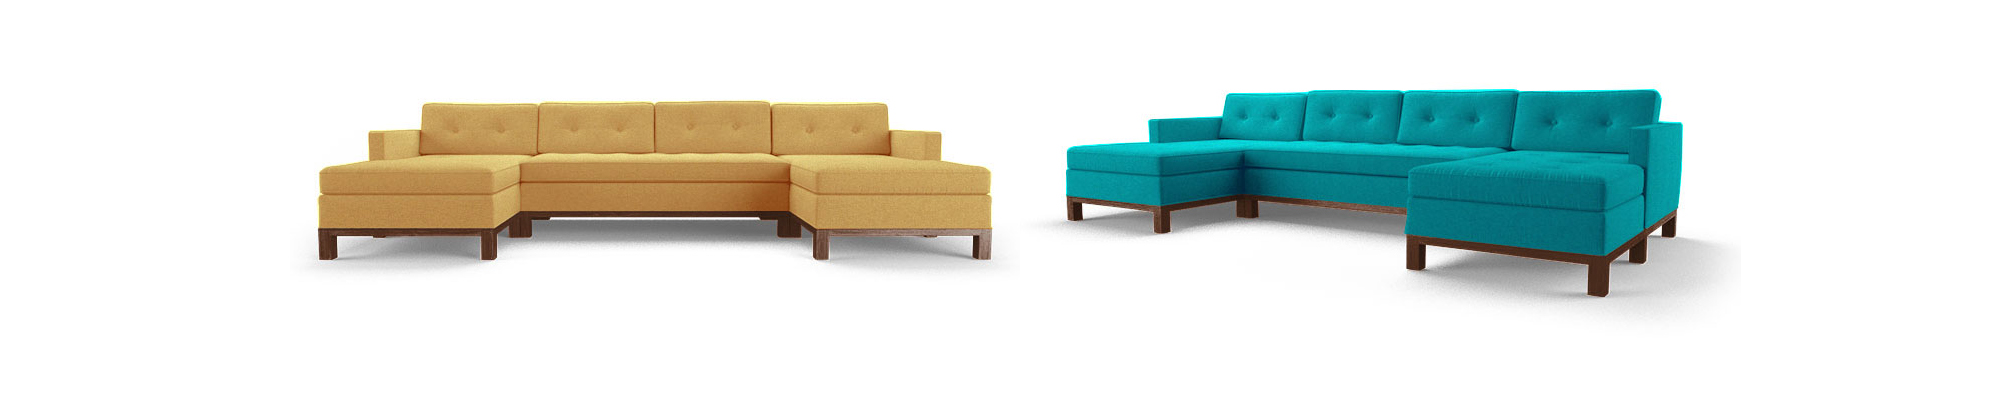 rendered-visualize-raine-u-chaise-sectional